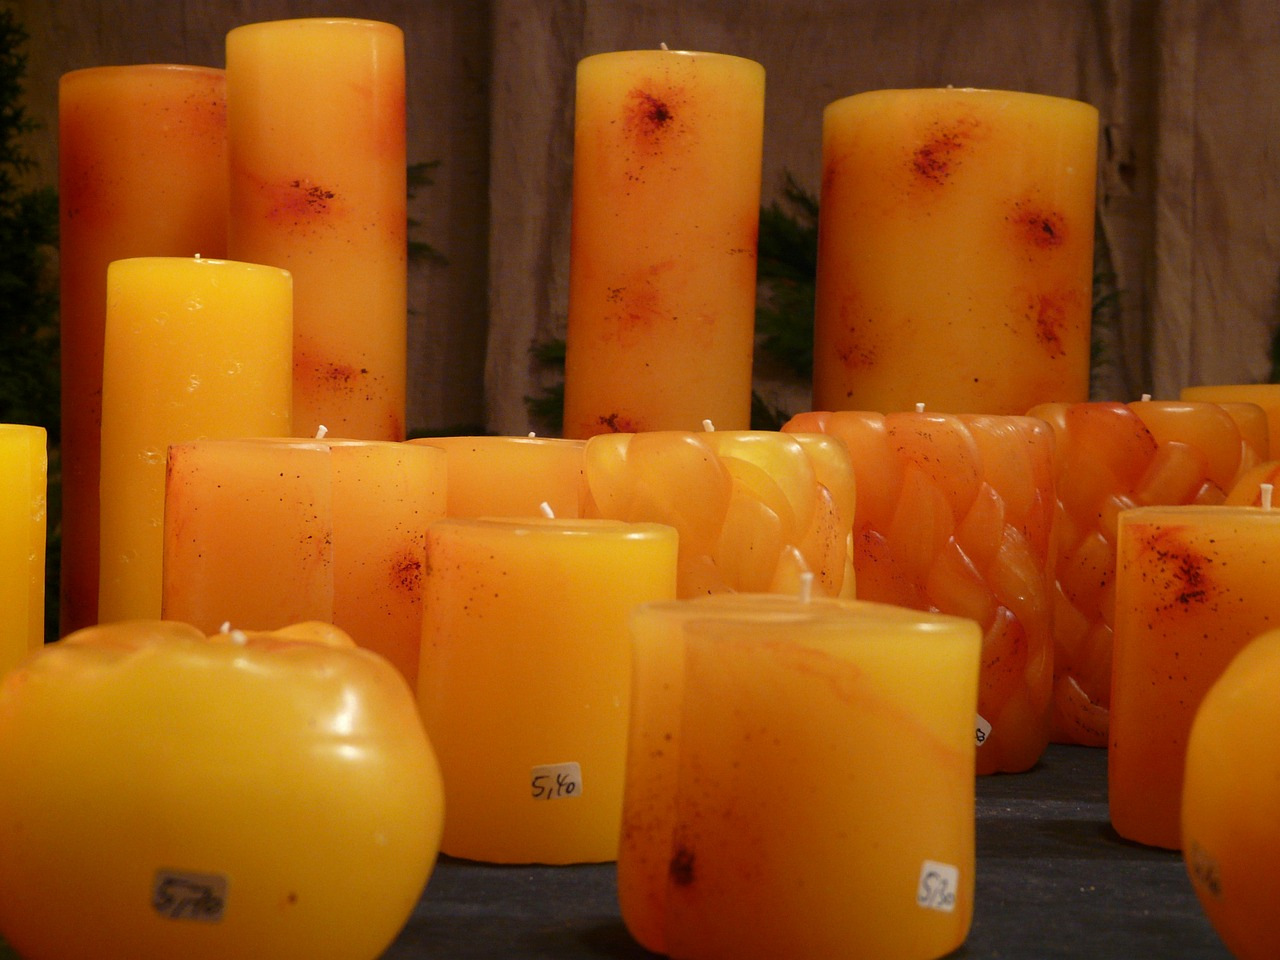 candles,candle wax,sale,wax,light,burn,price tag,award,free pictures, free photos, free images, royalty free, free illustrations, public domain